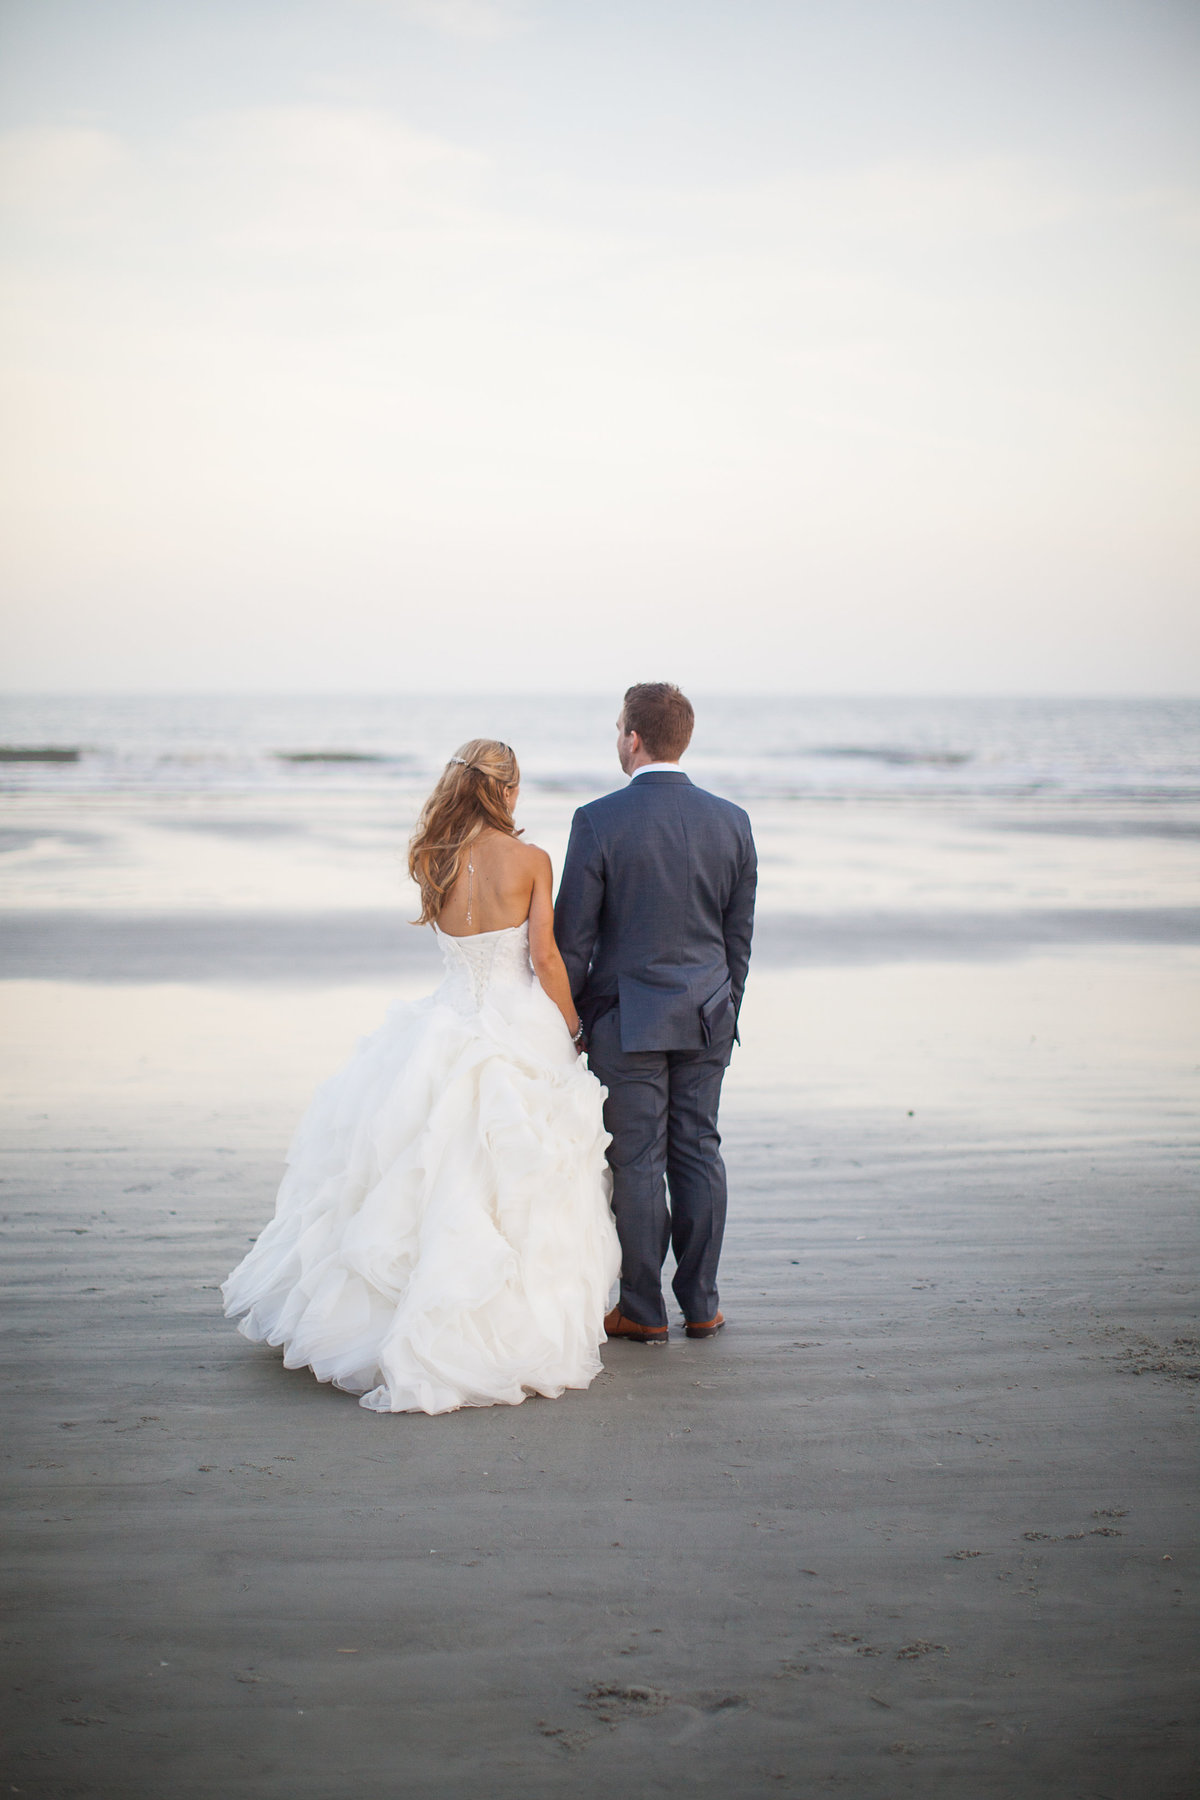 A bride and groom at their beach wedding